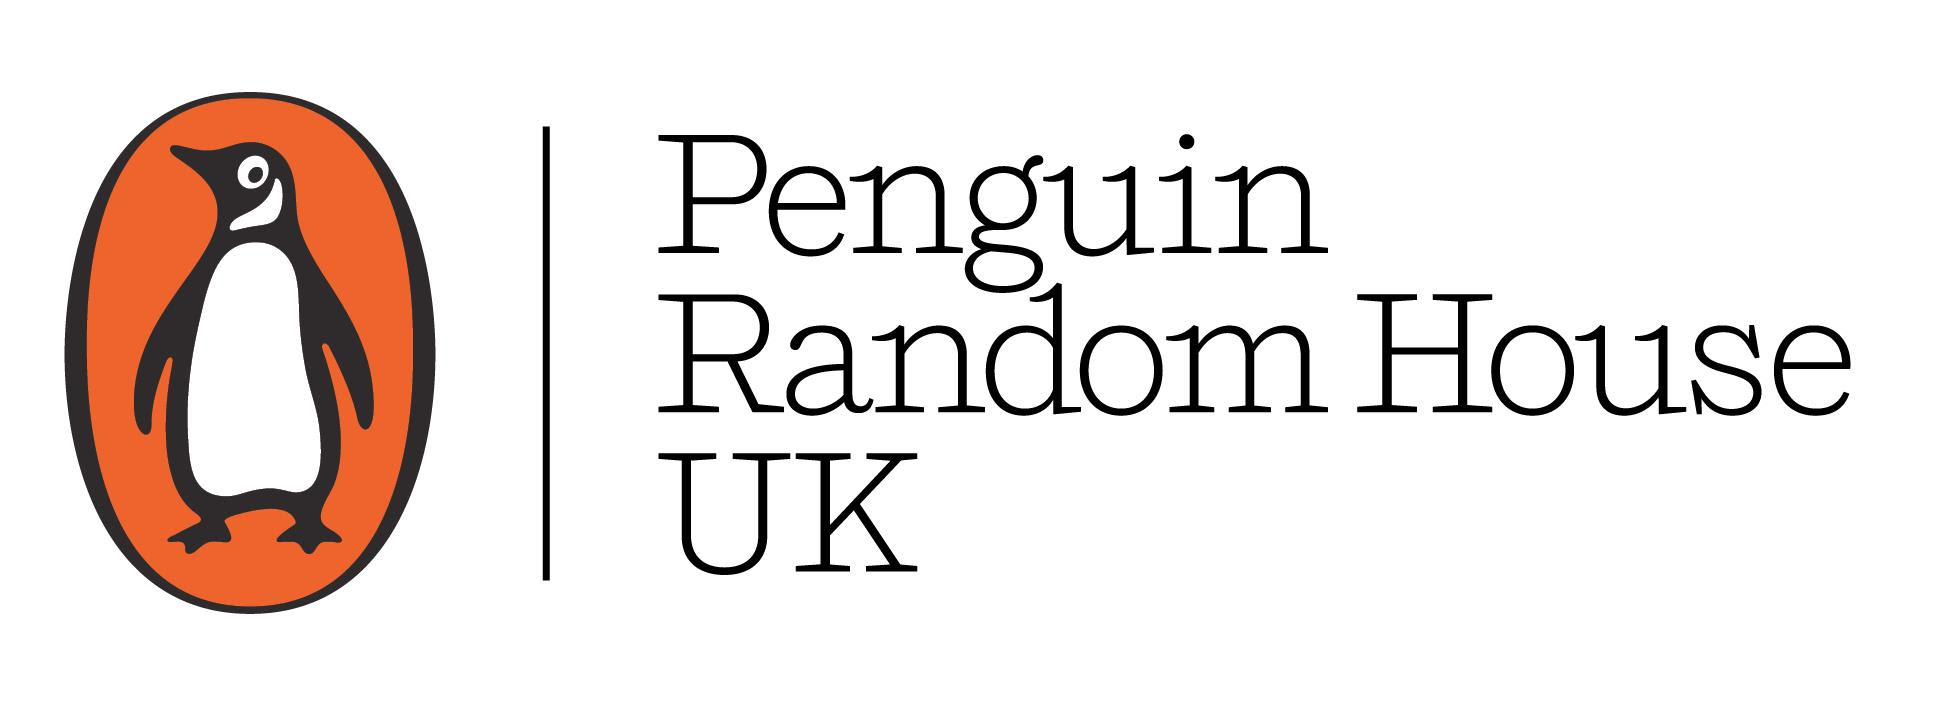 http://media.publishersmarketplace.com/wp-content/uploads/2014/06/Penguin-Random-House-UK-logo.jpg